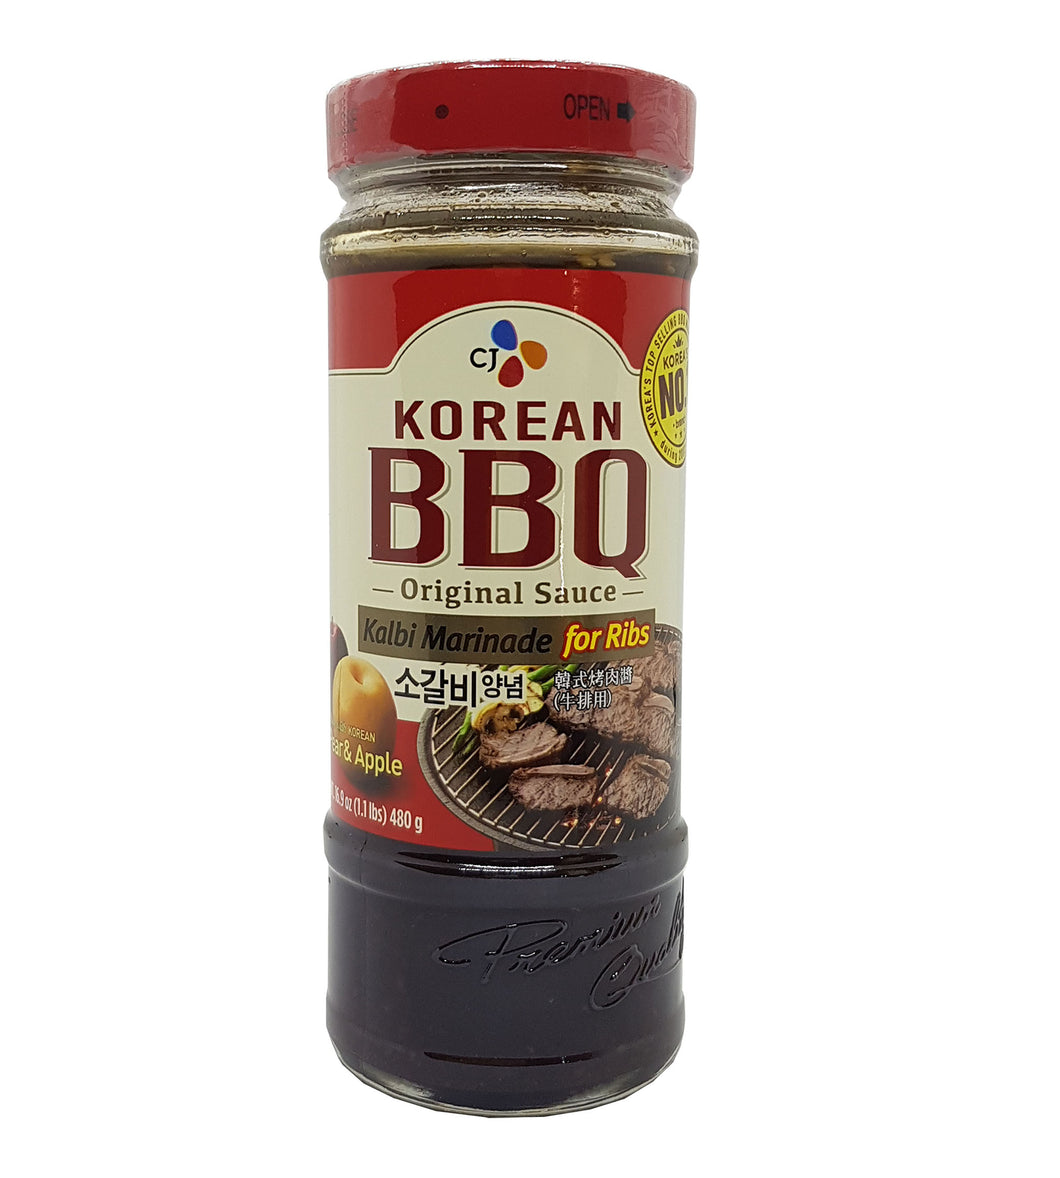 Cj Korean Bbq Sauce Kalbi Marinade For Ribs 17 6 Oz Secretpantryla